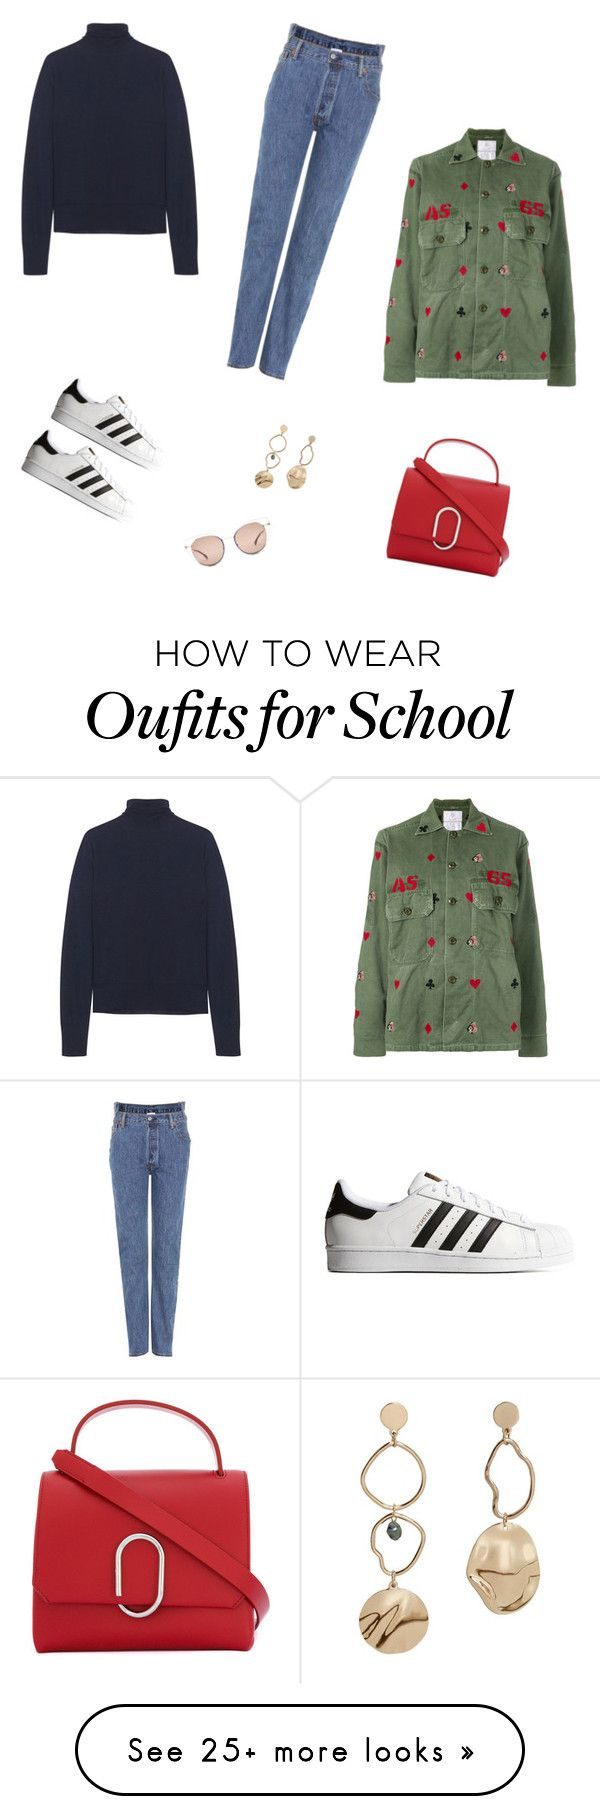 """School/shopping"" by joeybooey on Polyvore featuring adidas Originals, Bottega Veneta, Vetements, AS65, Fendi, MANGO and 3.1 Phillip Lim"